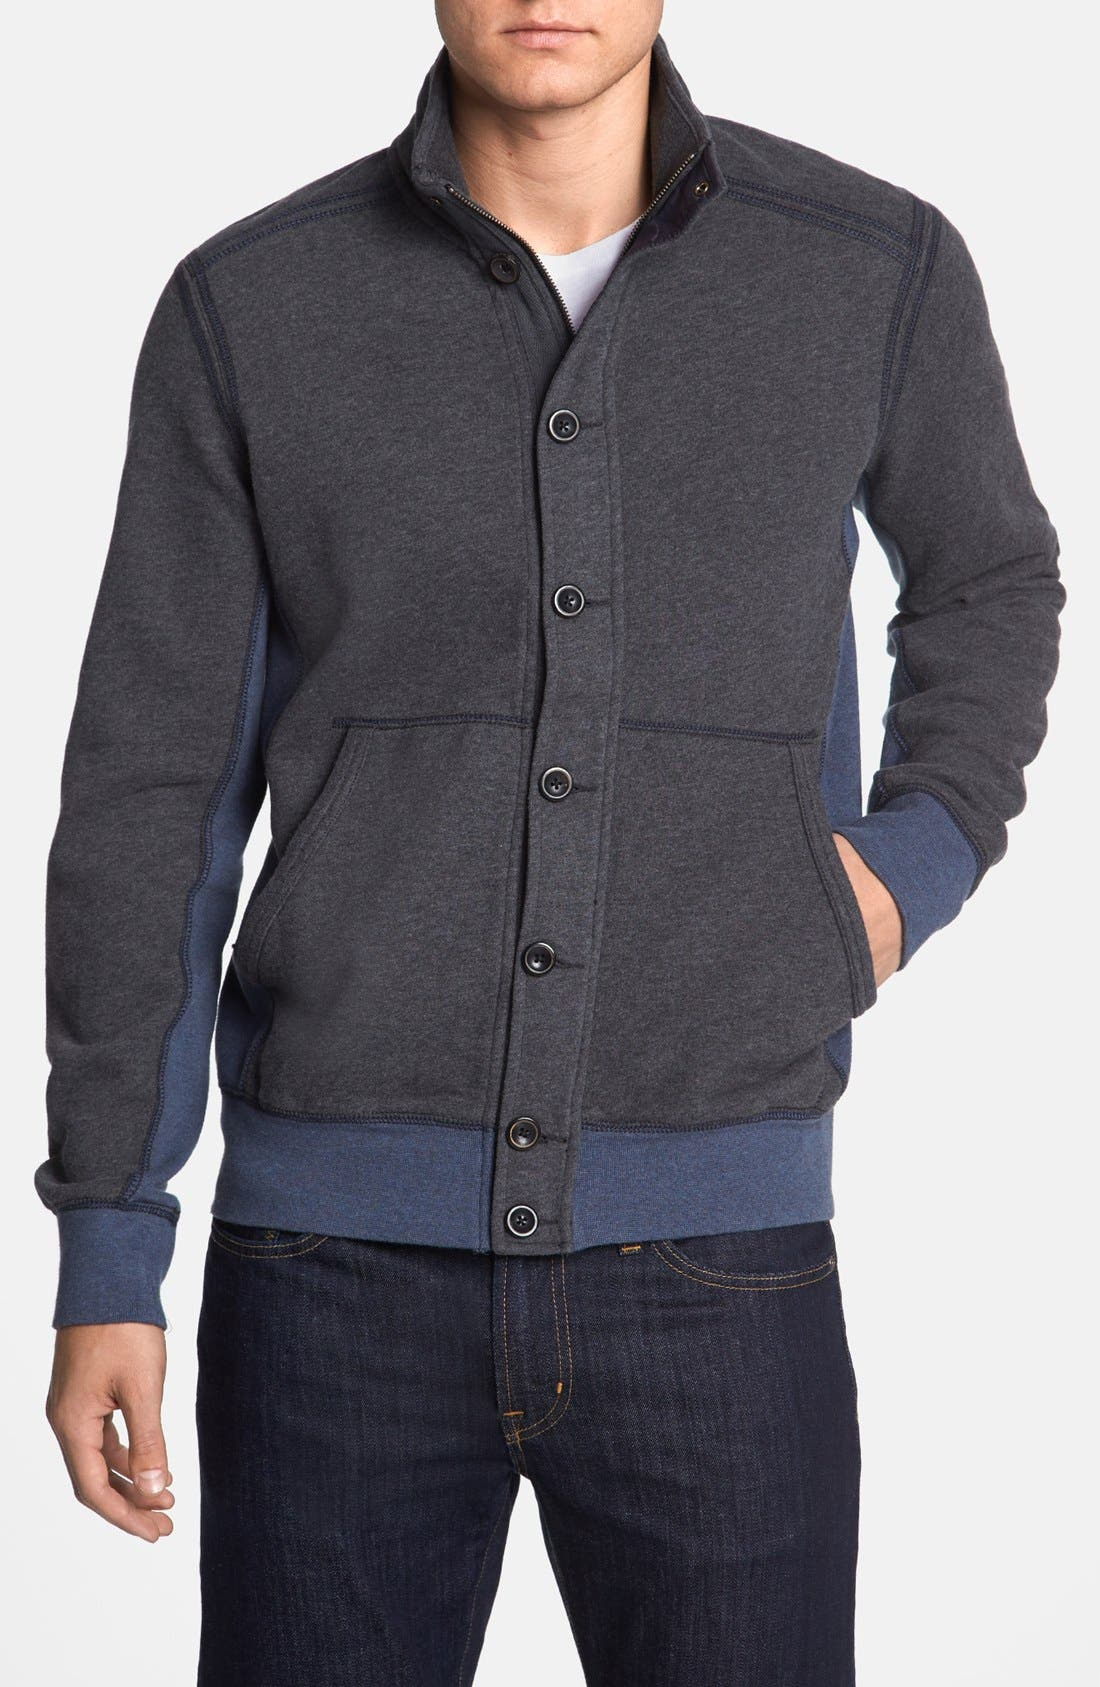 Alternate Image 1 Selected - Tommy Bahama Denim 'Explorer' Island Modern Fit Sweatshirt